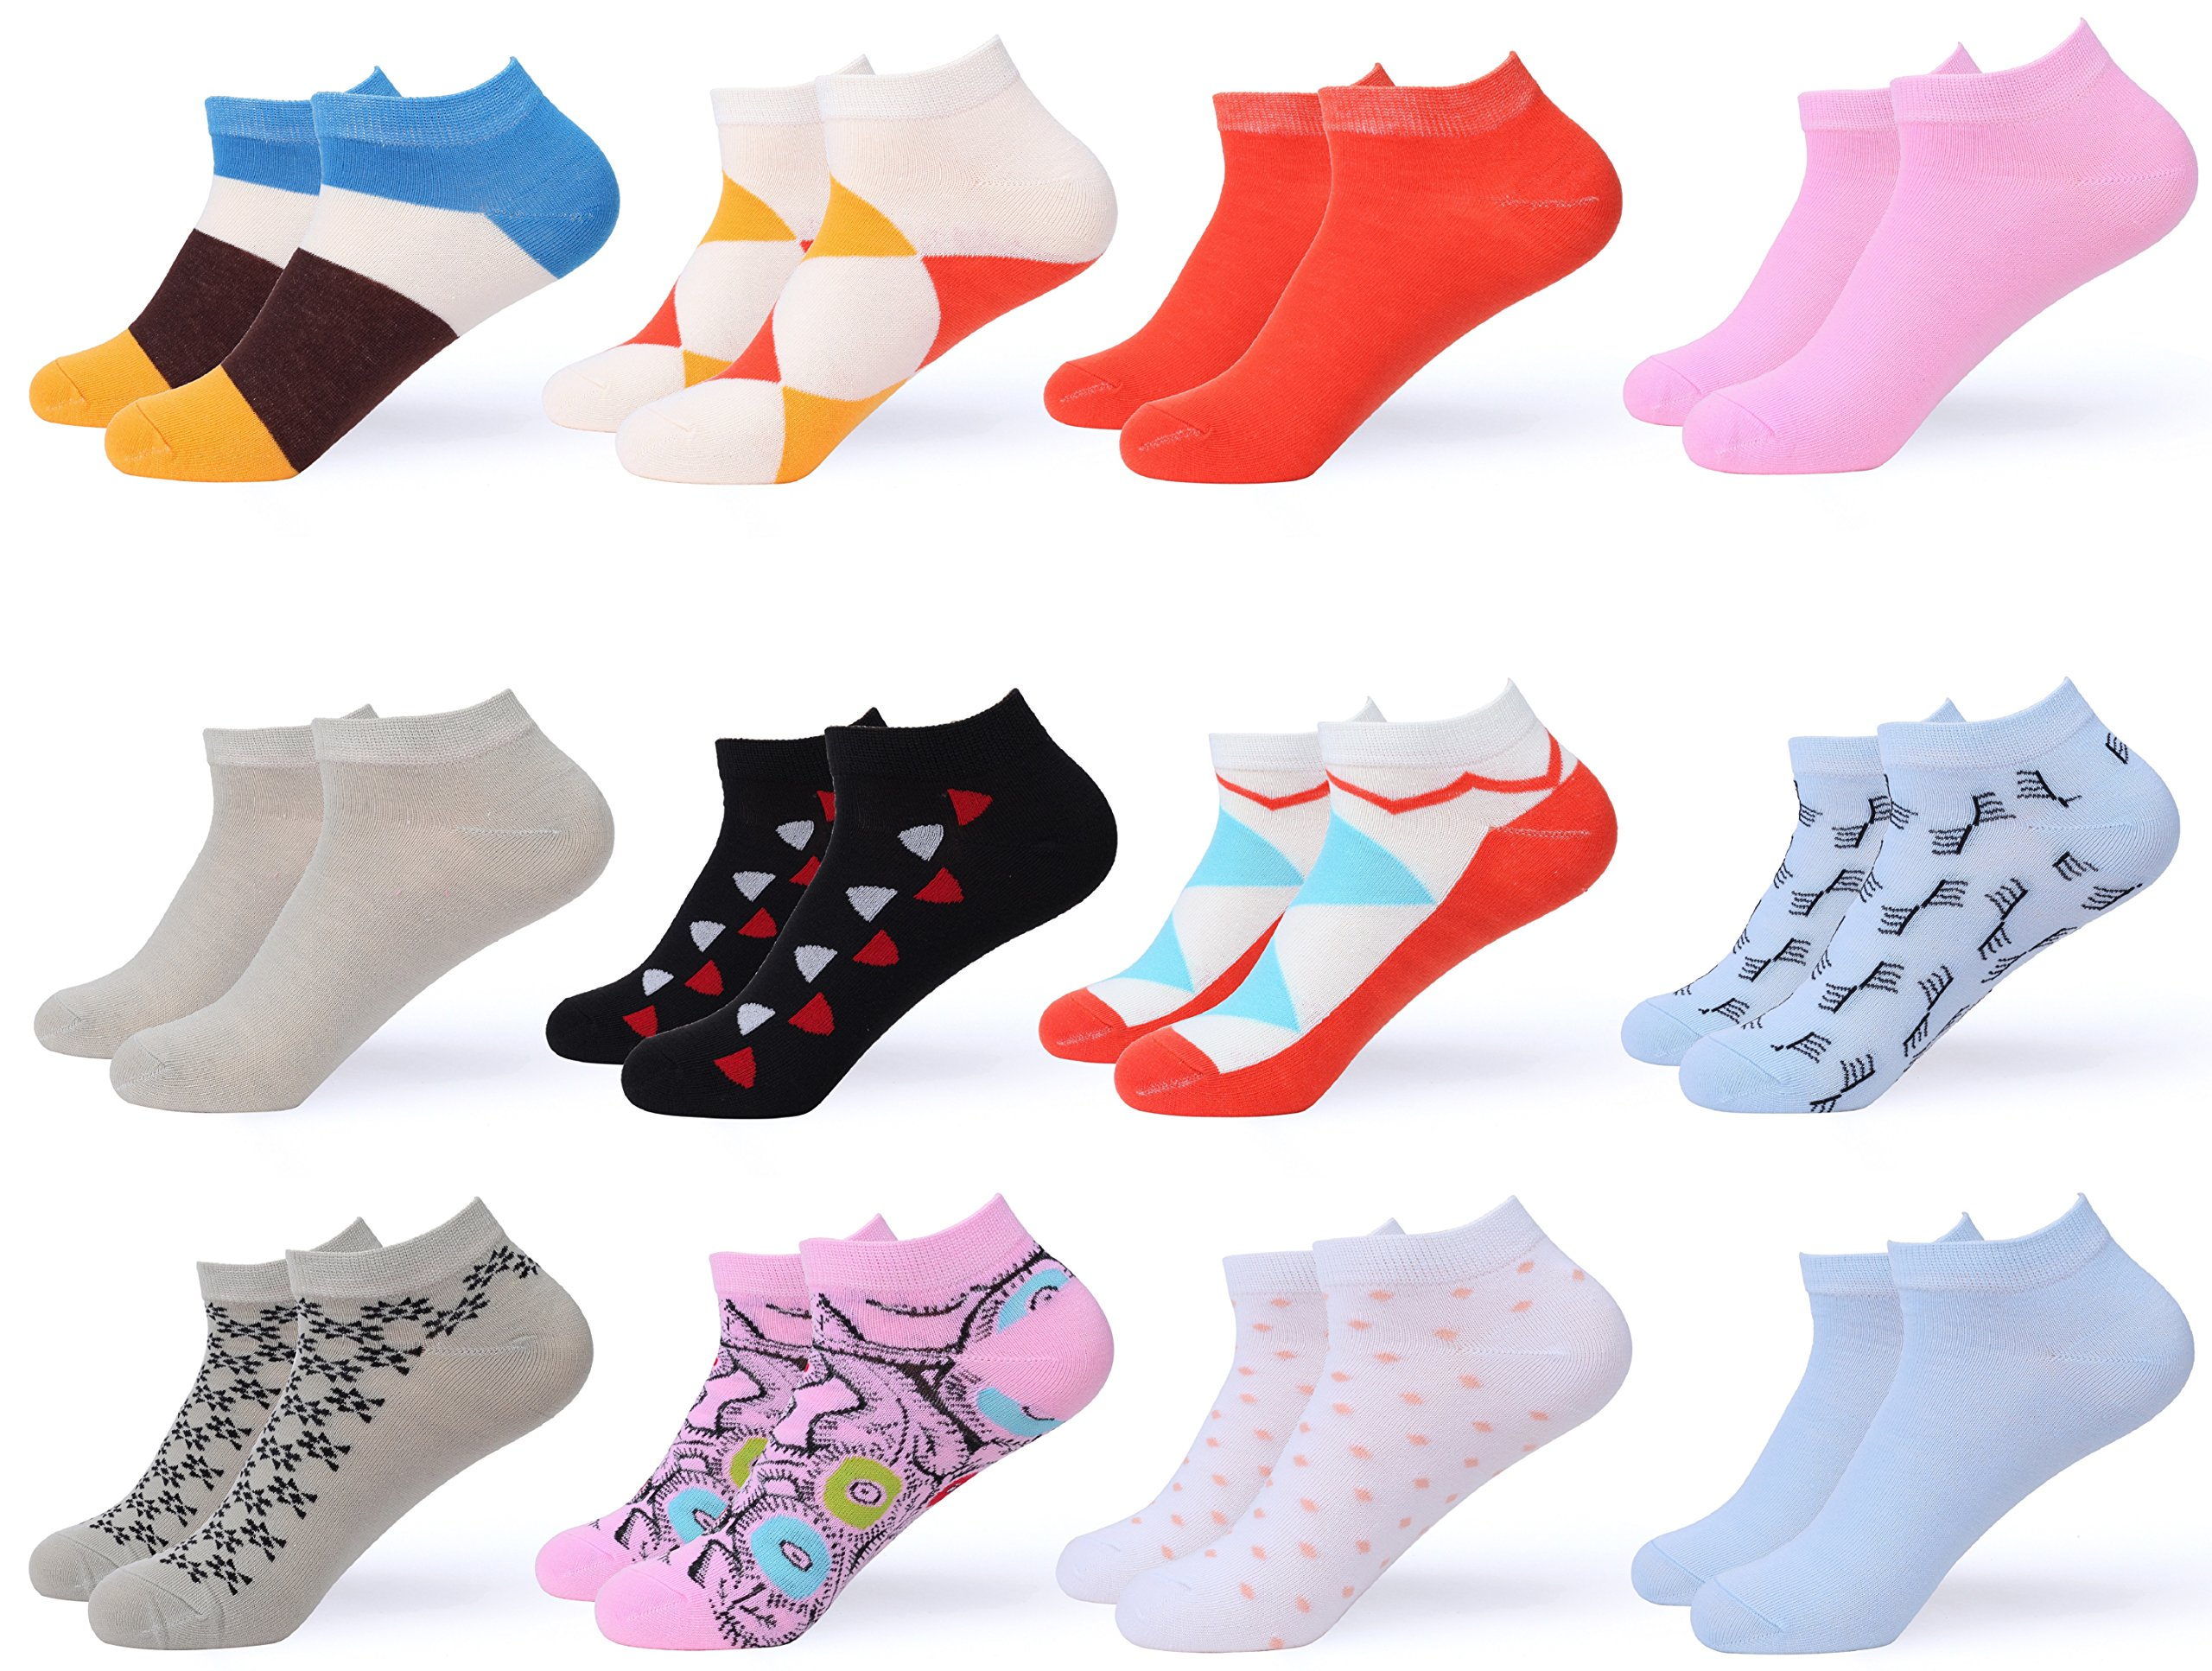 Gallery Seven Women's Ankle Socks - Low Cut Colorful Socks For Women - Size 9-11 - 12 Pack (Style - 5)